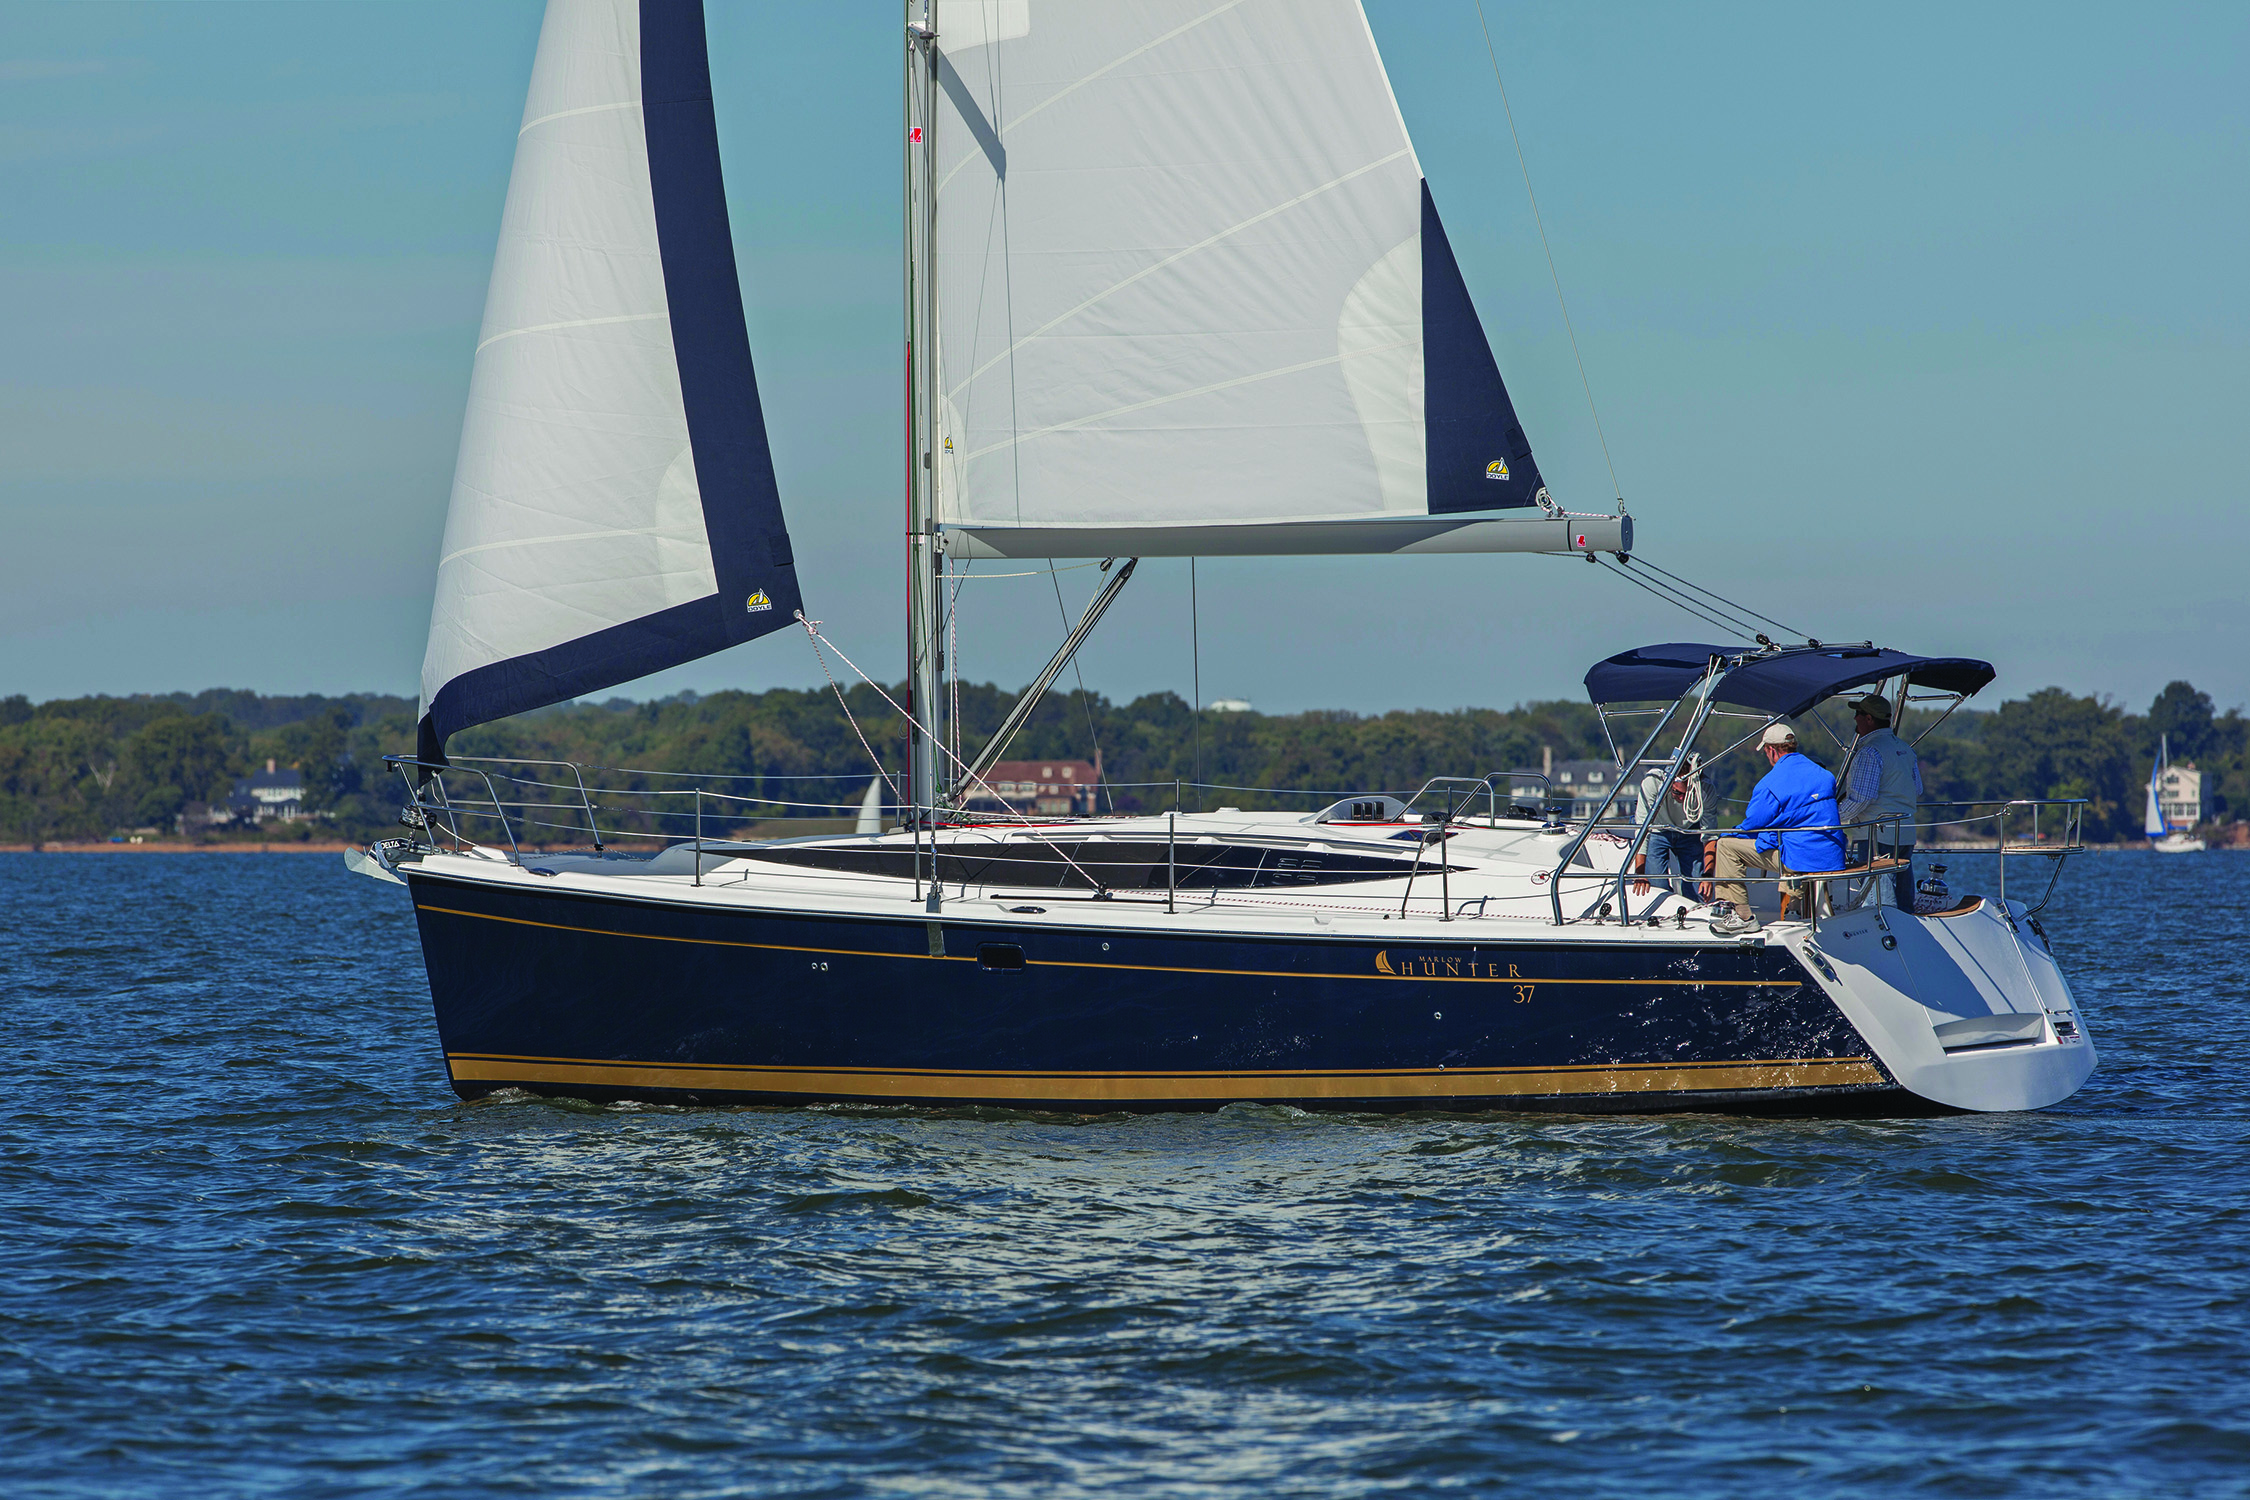 Hunter 37 sailing in Annapolis, MD.